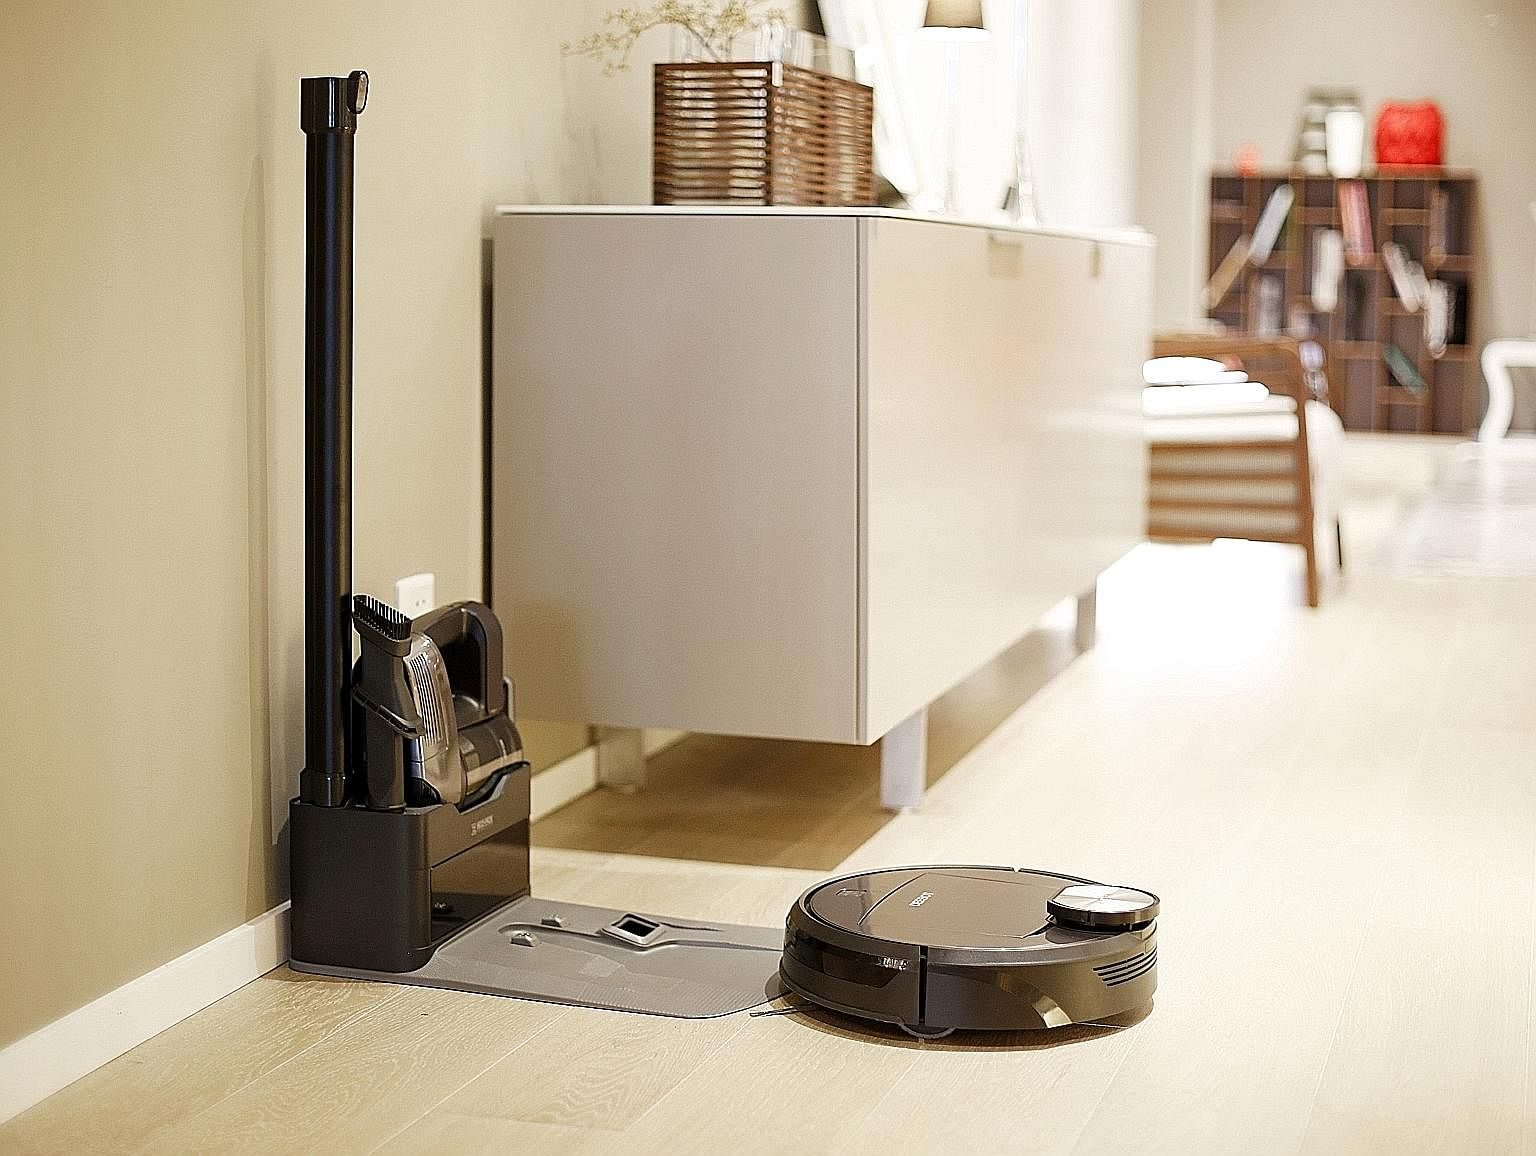 The handheld unit docks at the same charging station as the robot. One great feature is that when the robot docks at the station, it automatically transfers the contents of its bin to the handheld unit's dustbin.